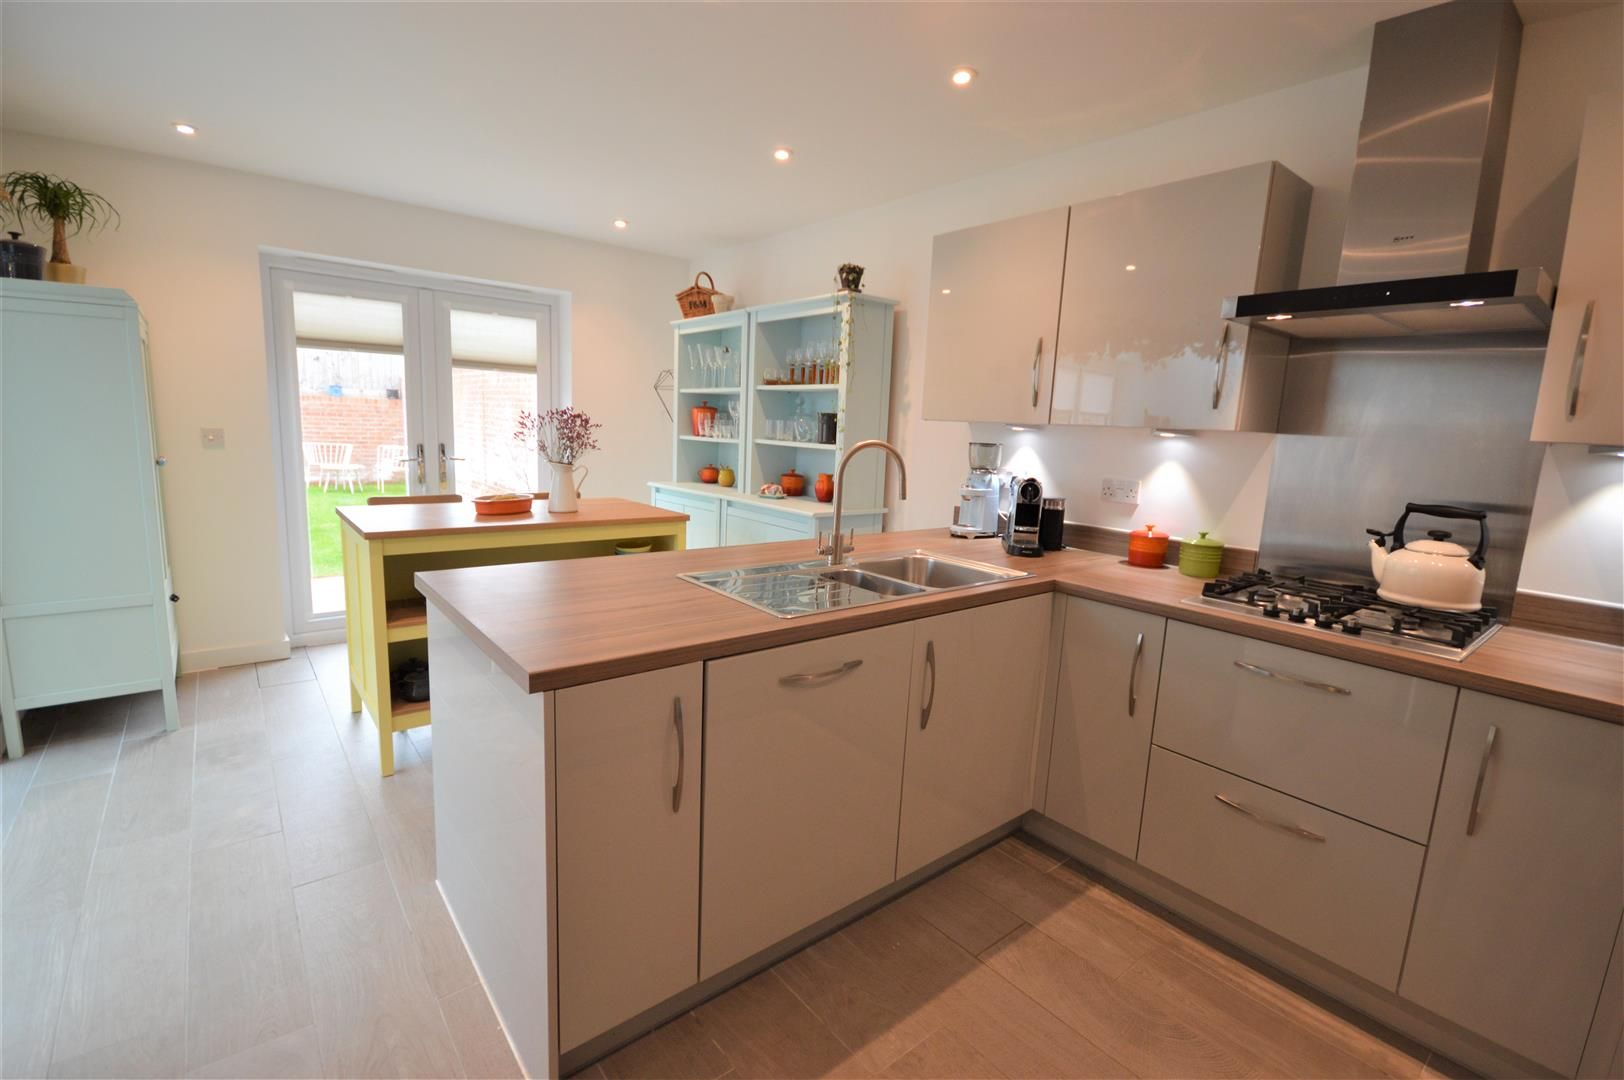 5 bed detached for sale in Weobley  - Property Image 4